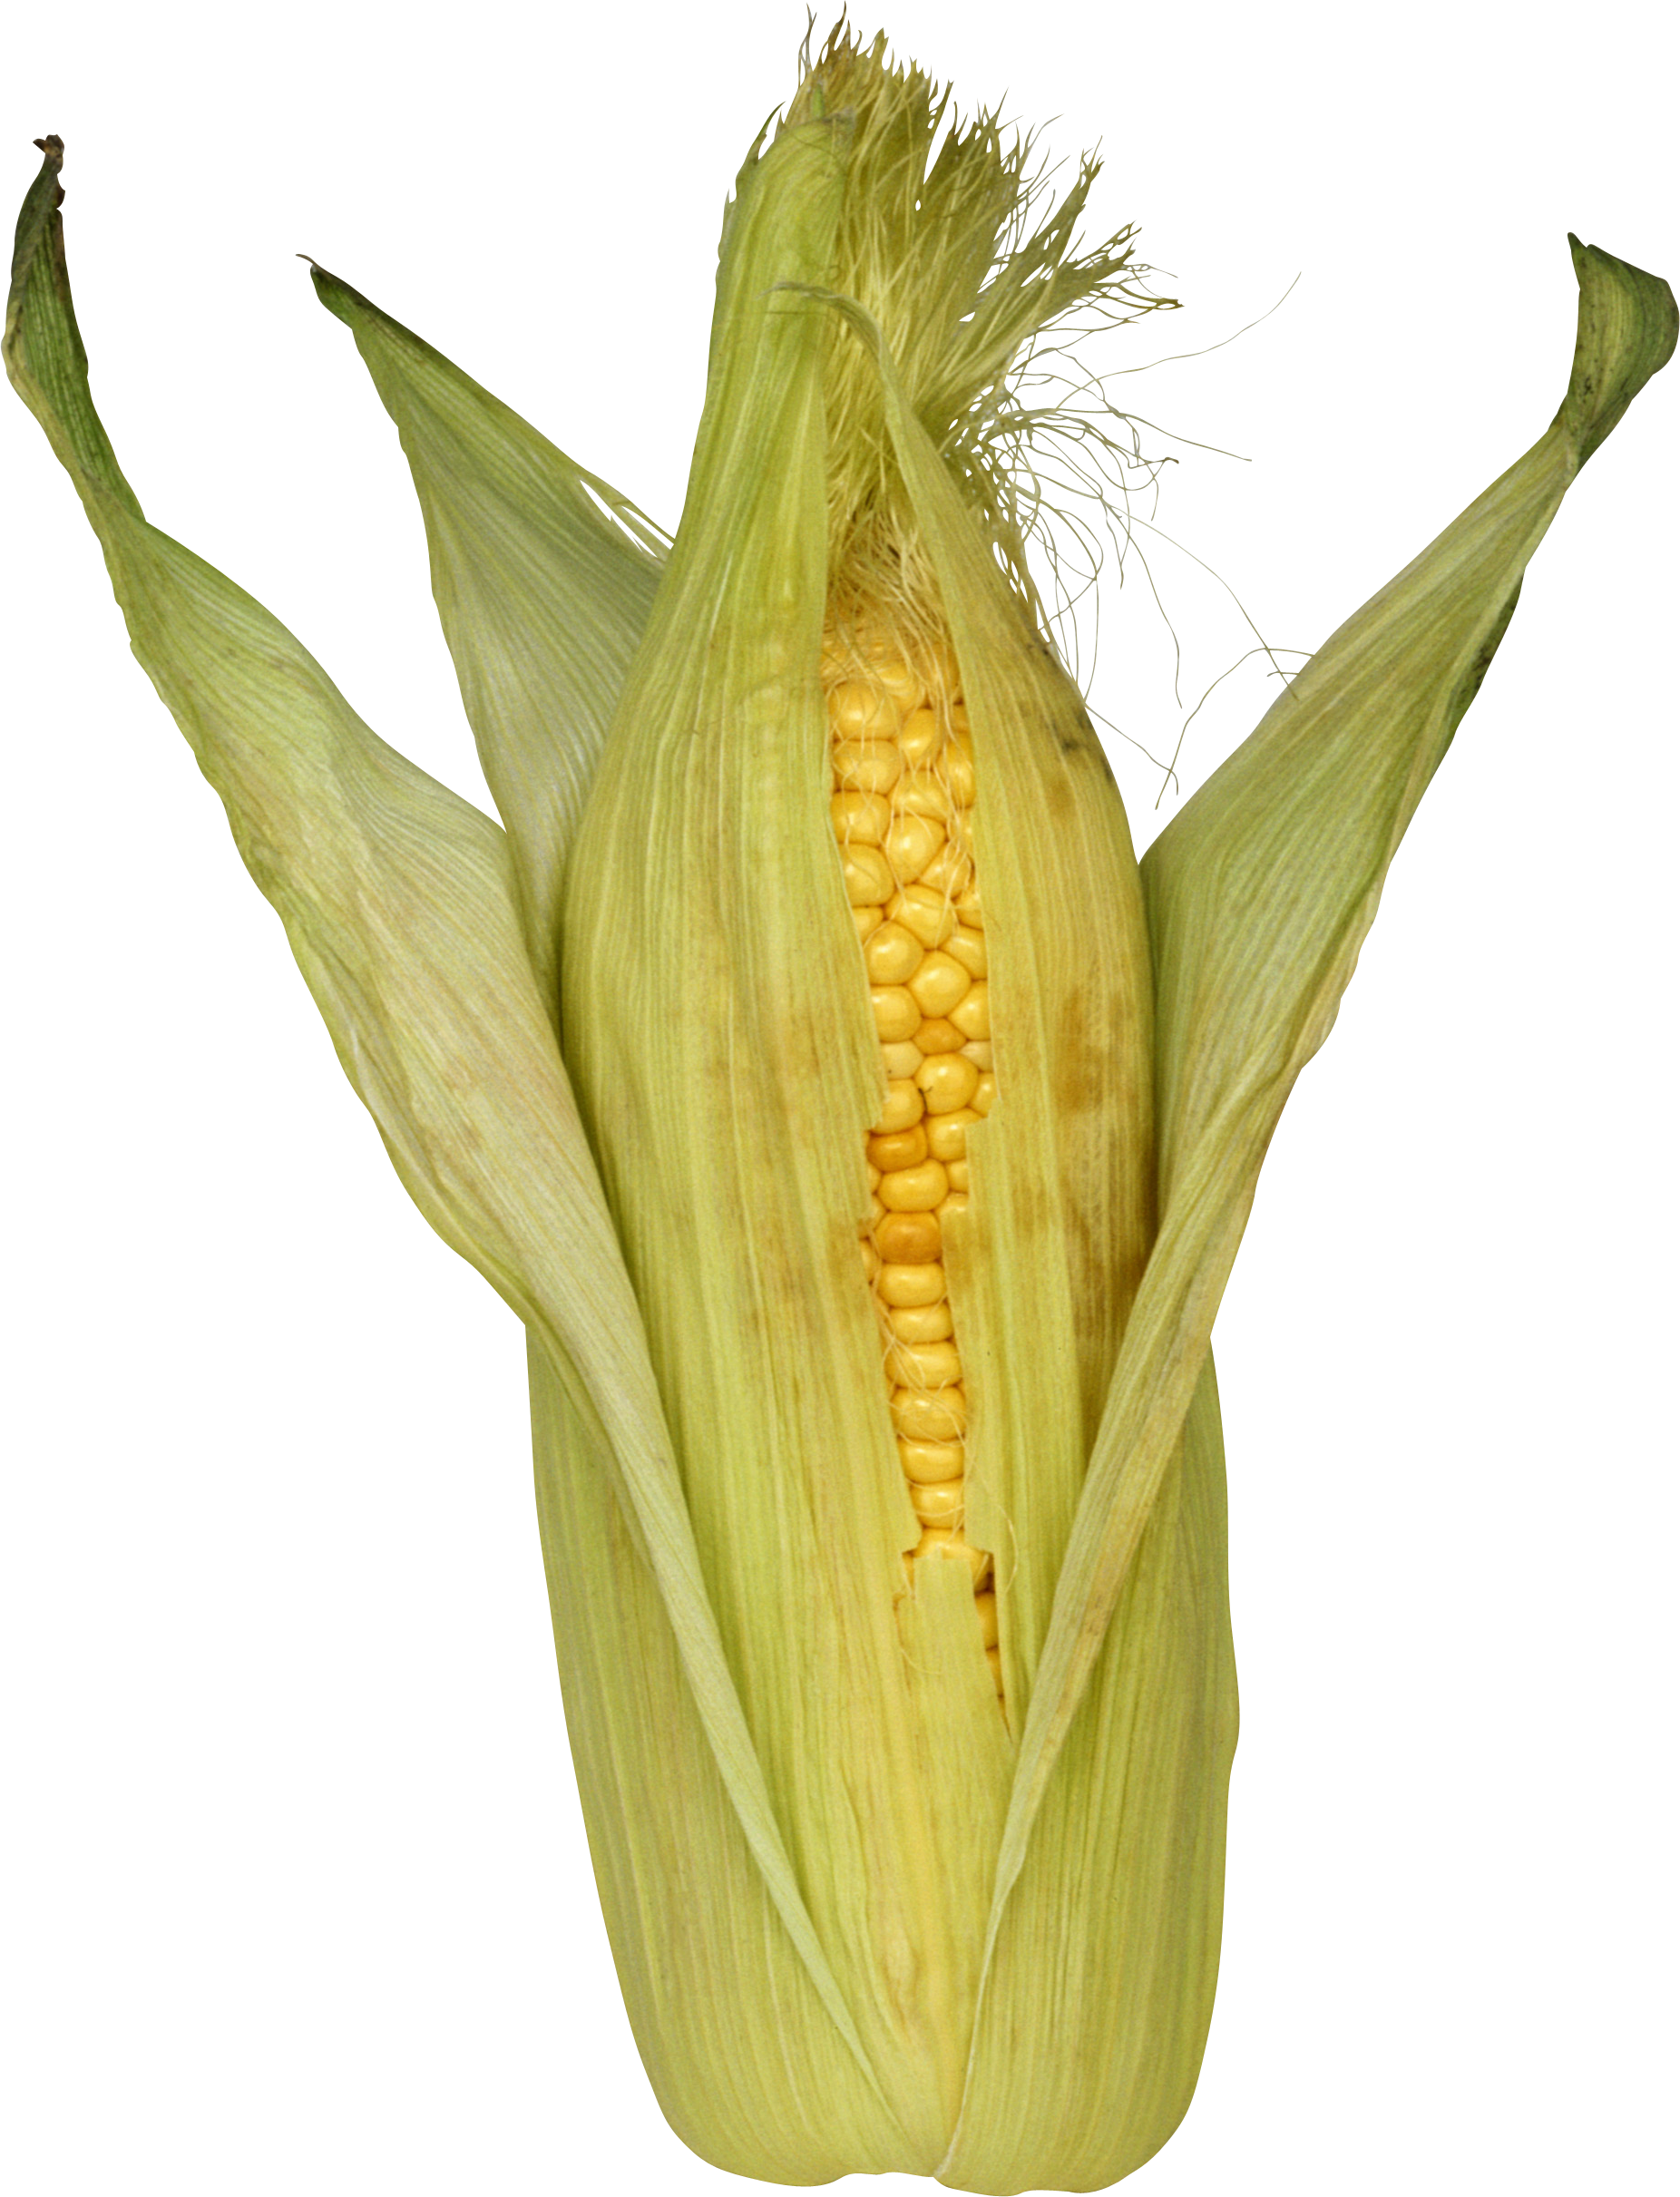 Png images download yellow. Fall clipart corn stalk